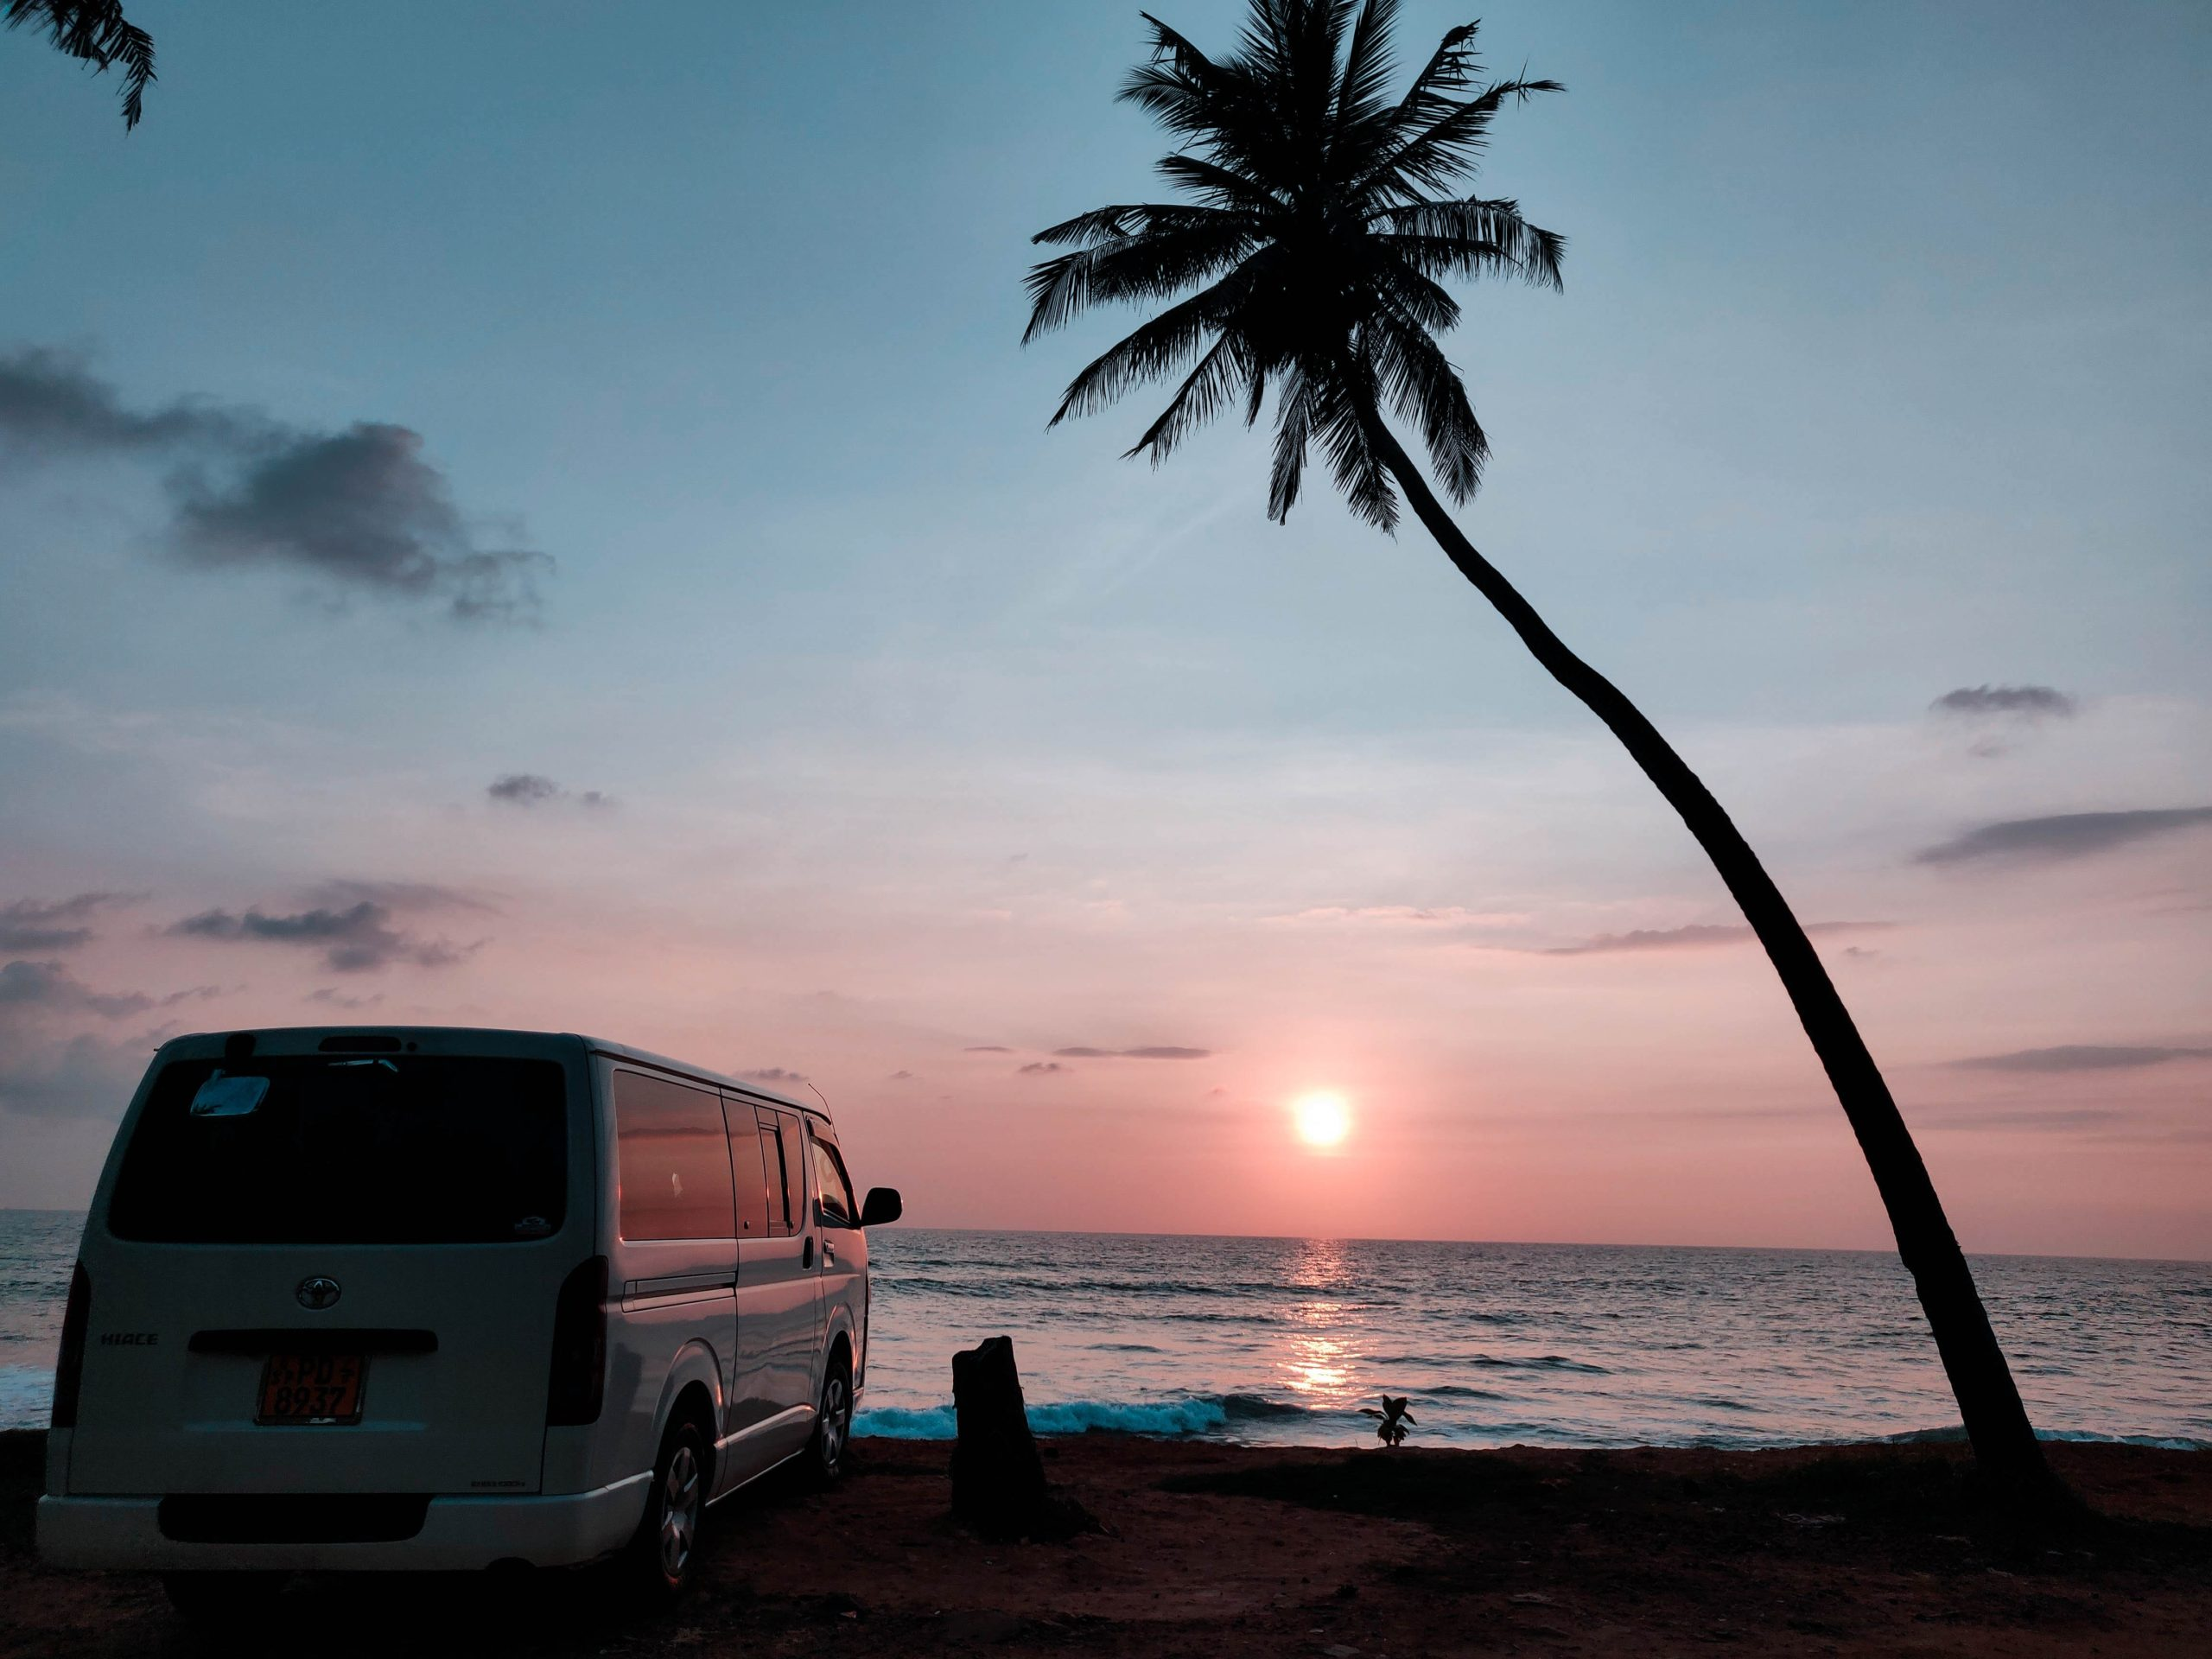 Parked van looking out at a beach sunset